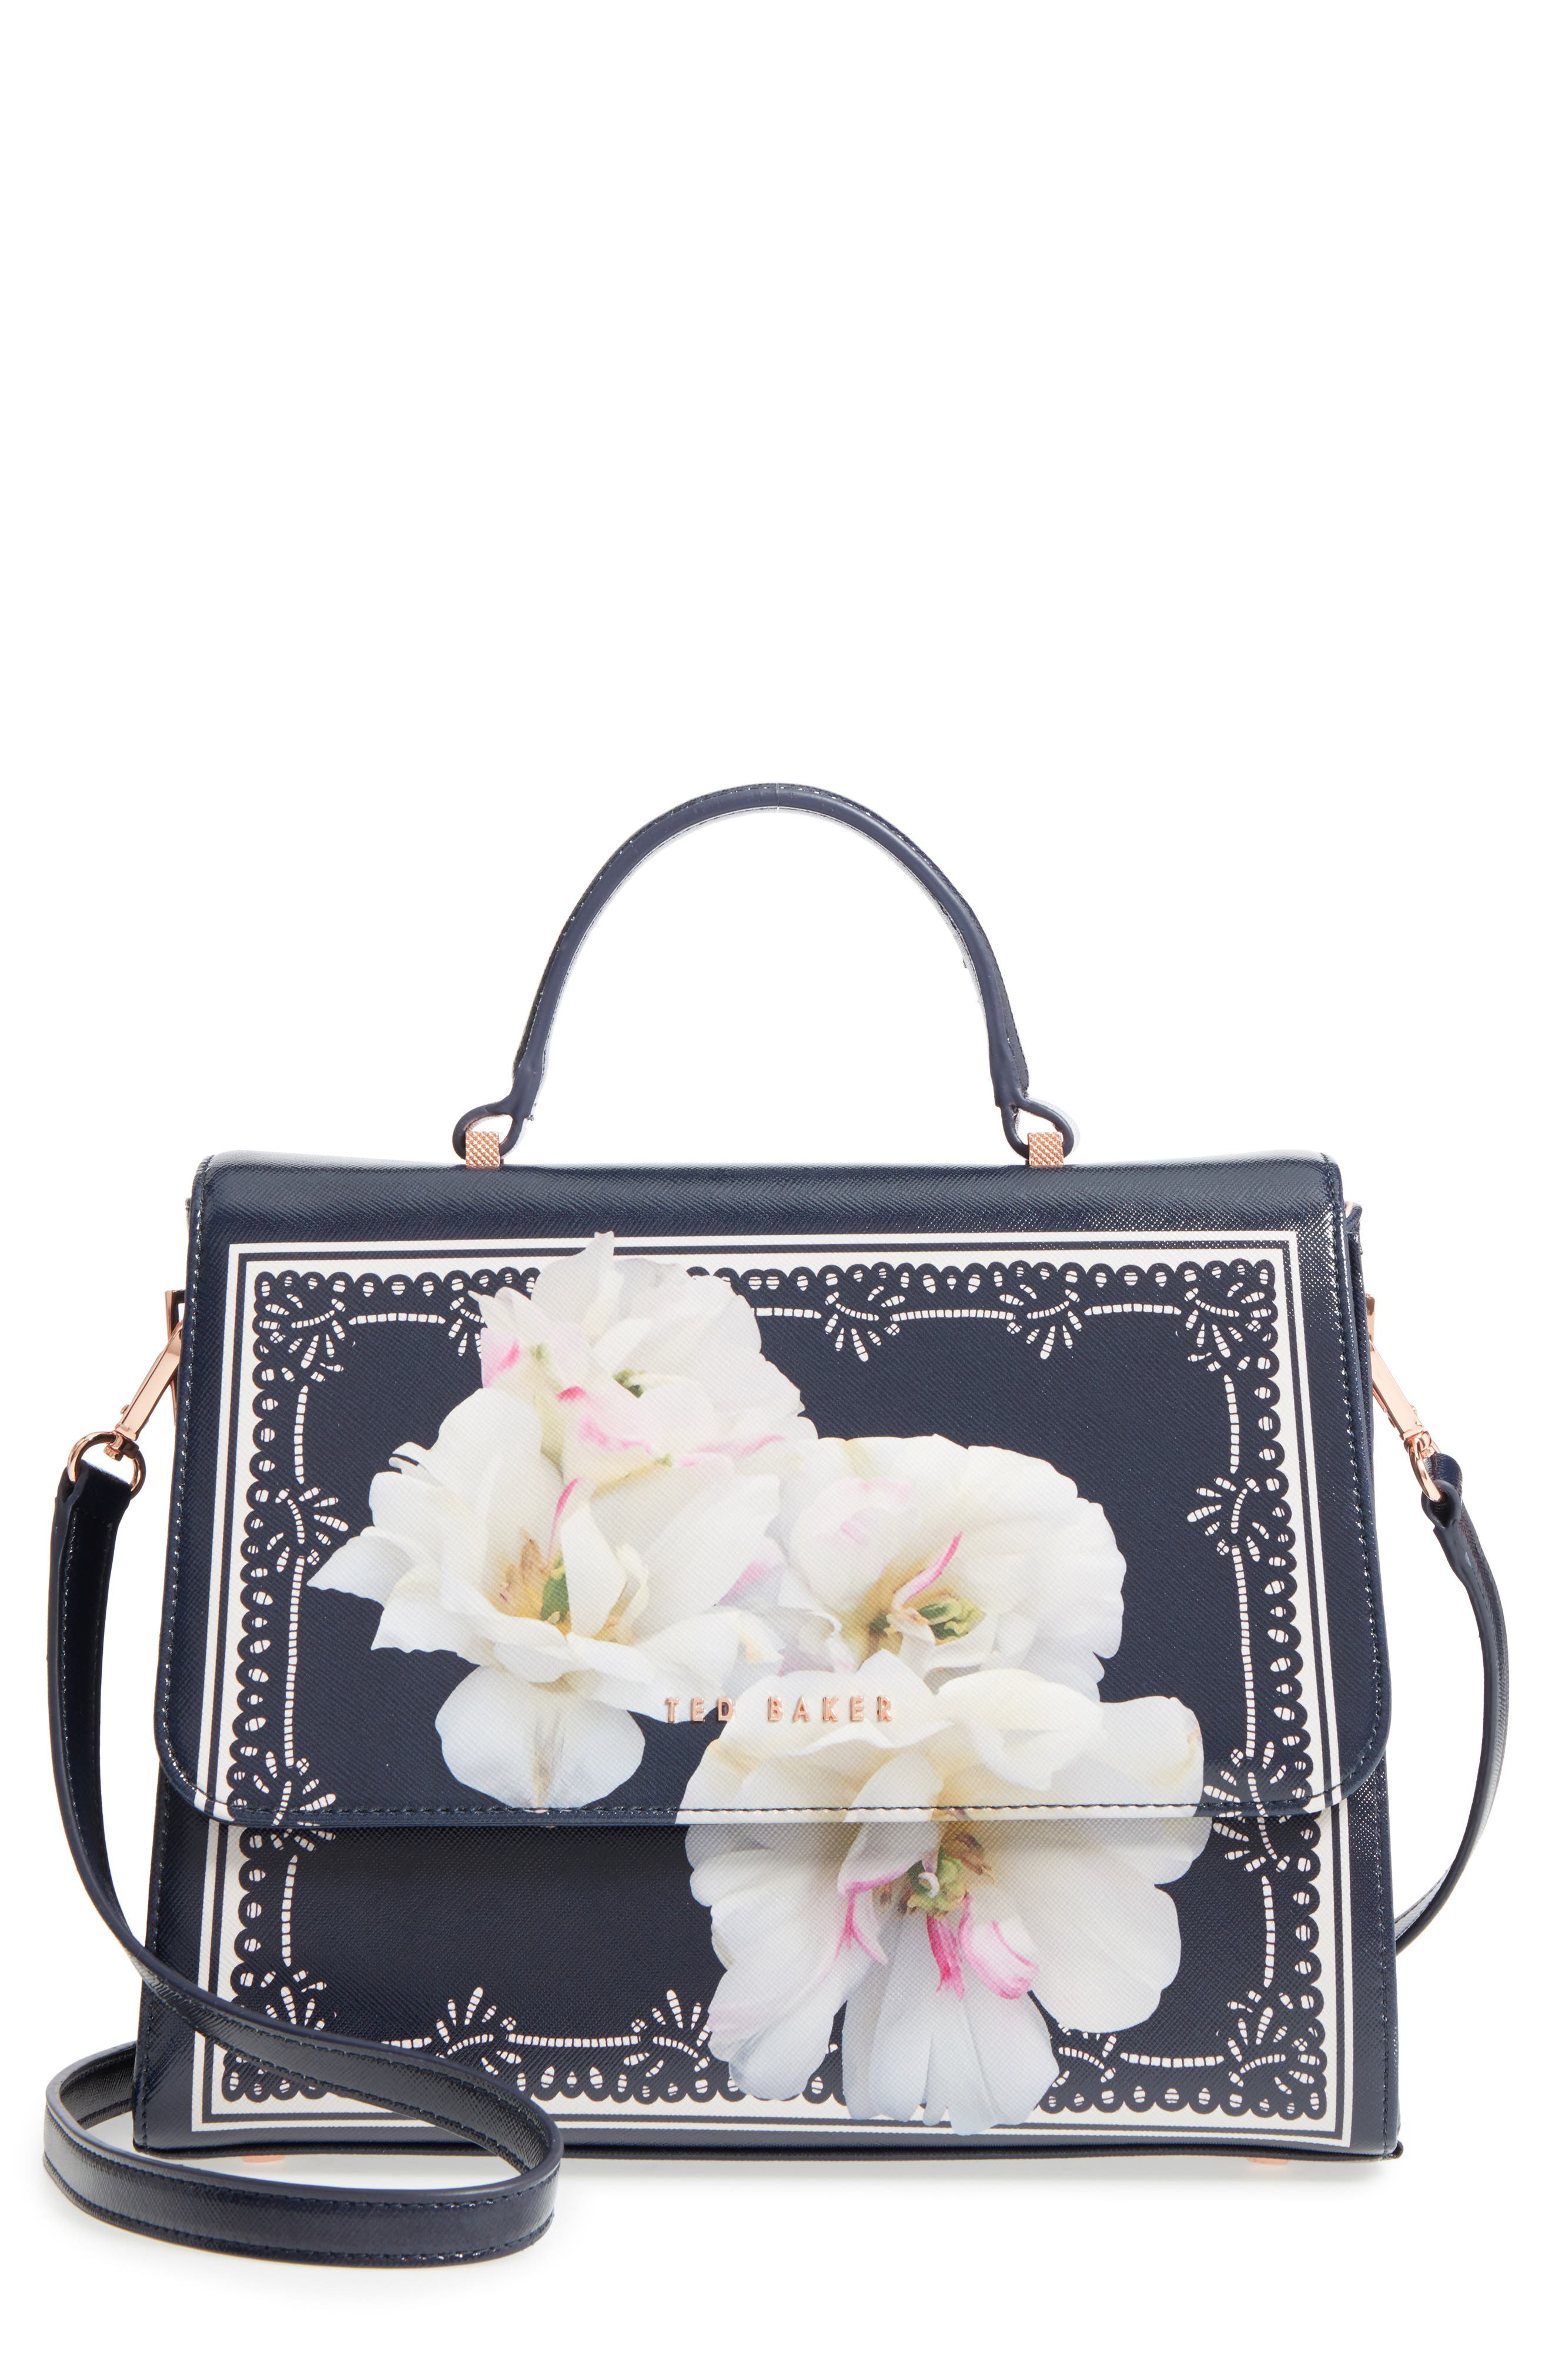 Alternate Image 1 Selected - Ted Baker London Gardenia Faux Leather Satchel